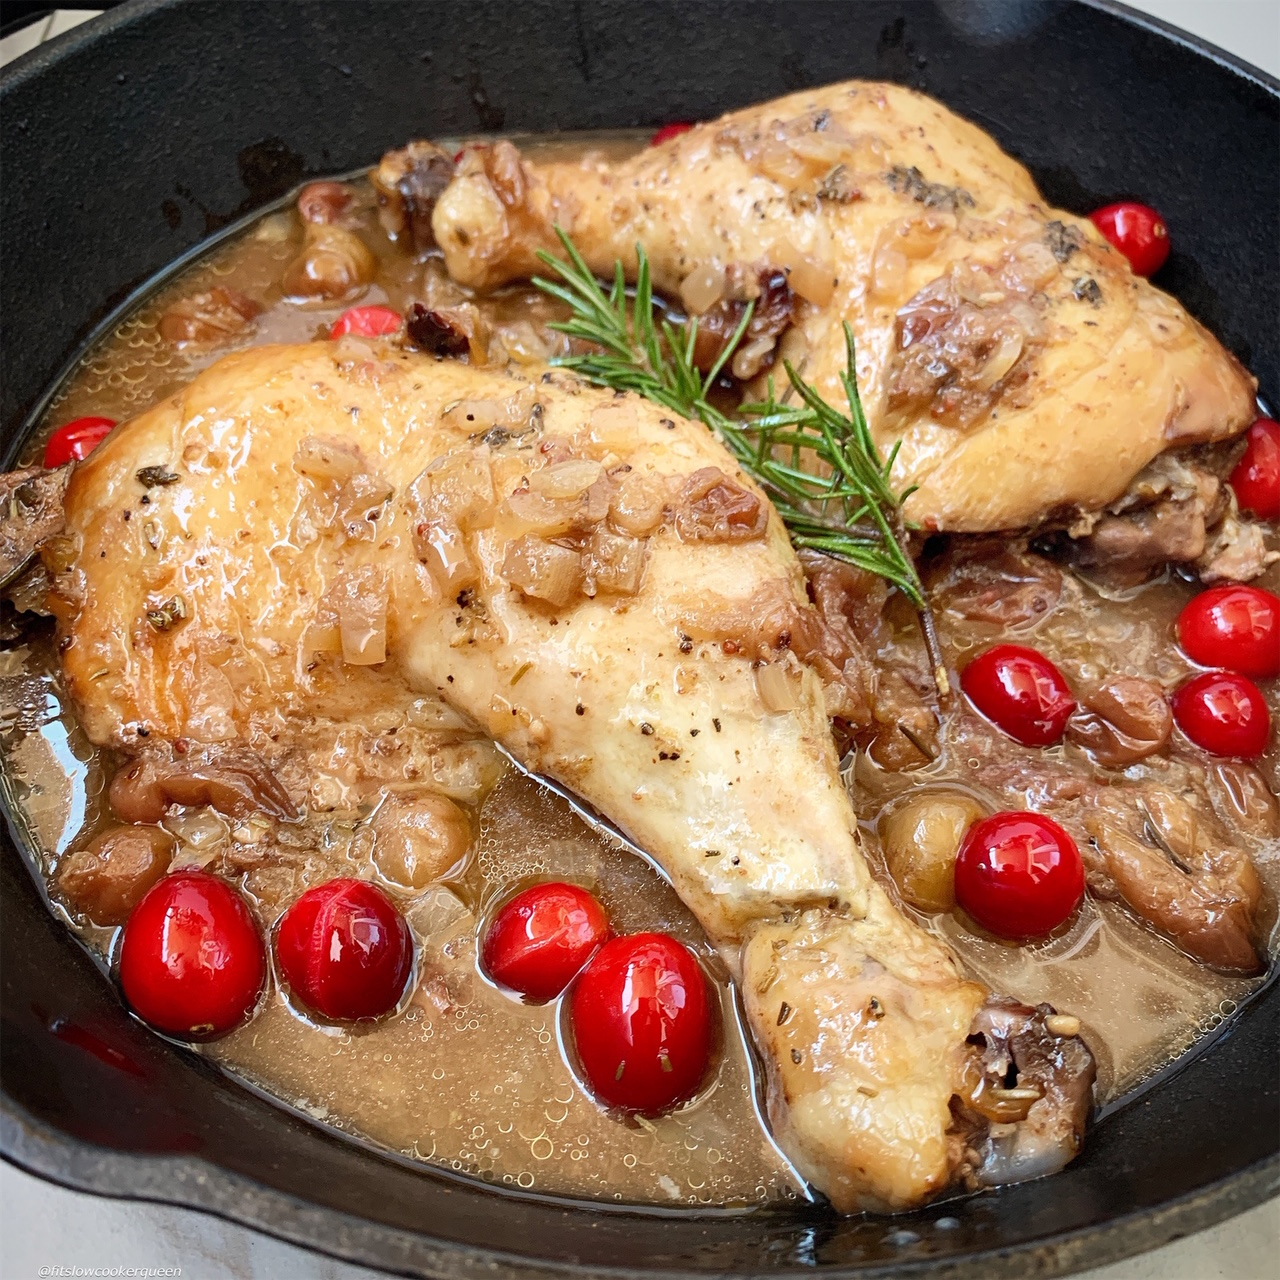 A homemade balsamic and cranberry sauce cooks on top of your favorite cut of chicken in this easy and healthy recipe that can be made in your slow cooker or Instant Pot